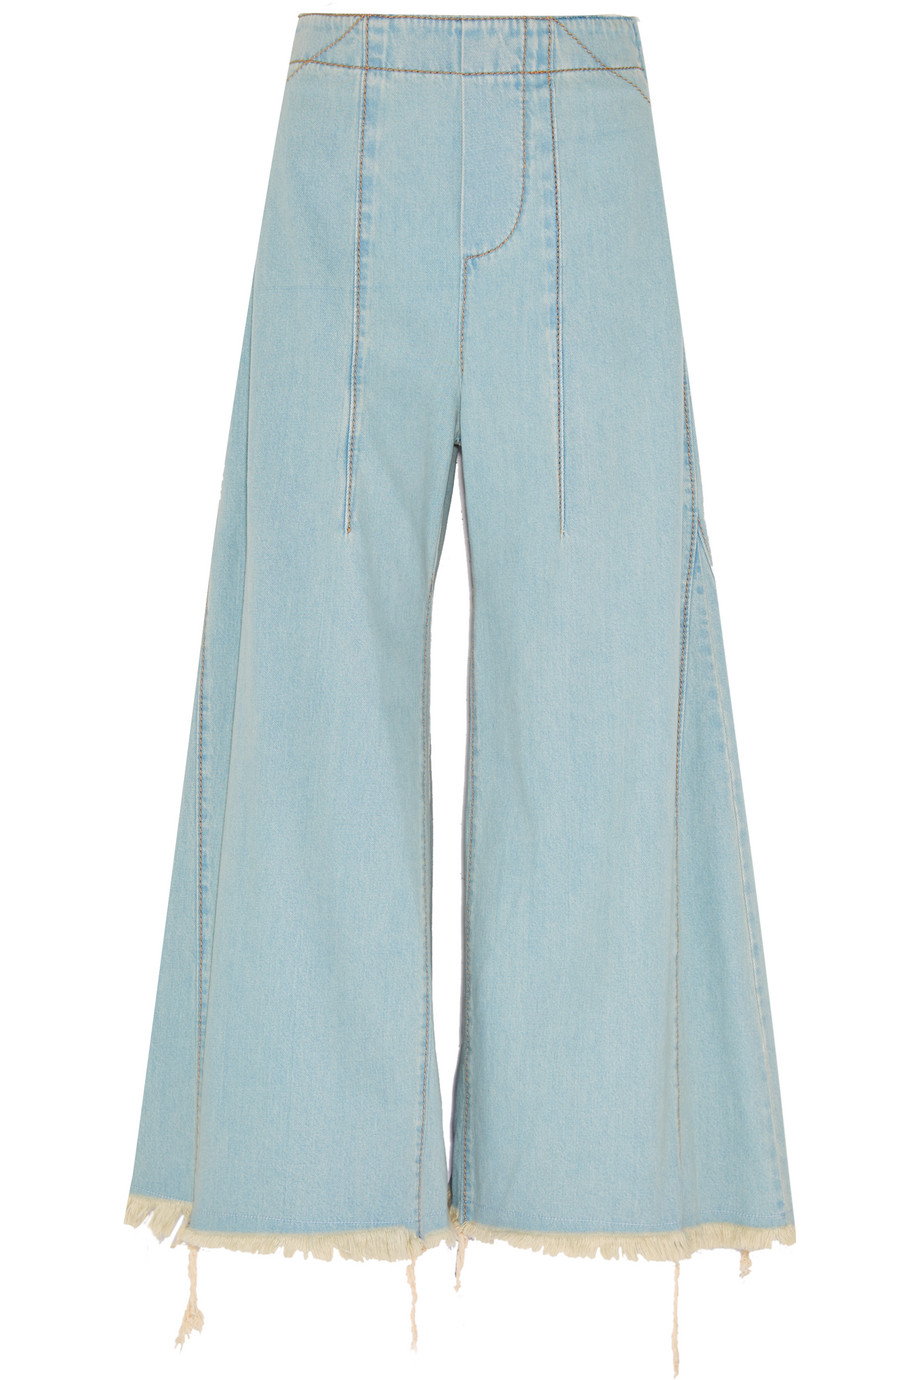 Chloé Distressed Mid-Rise Flared Jeans, Size: 34